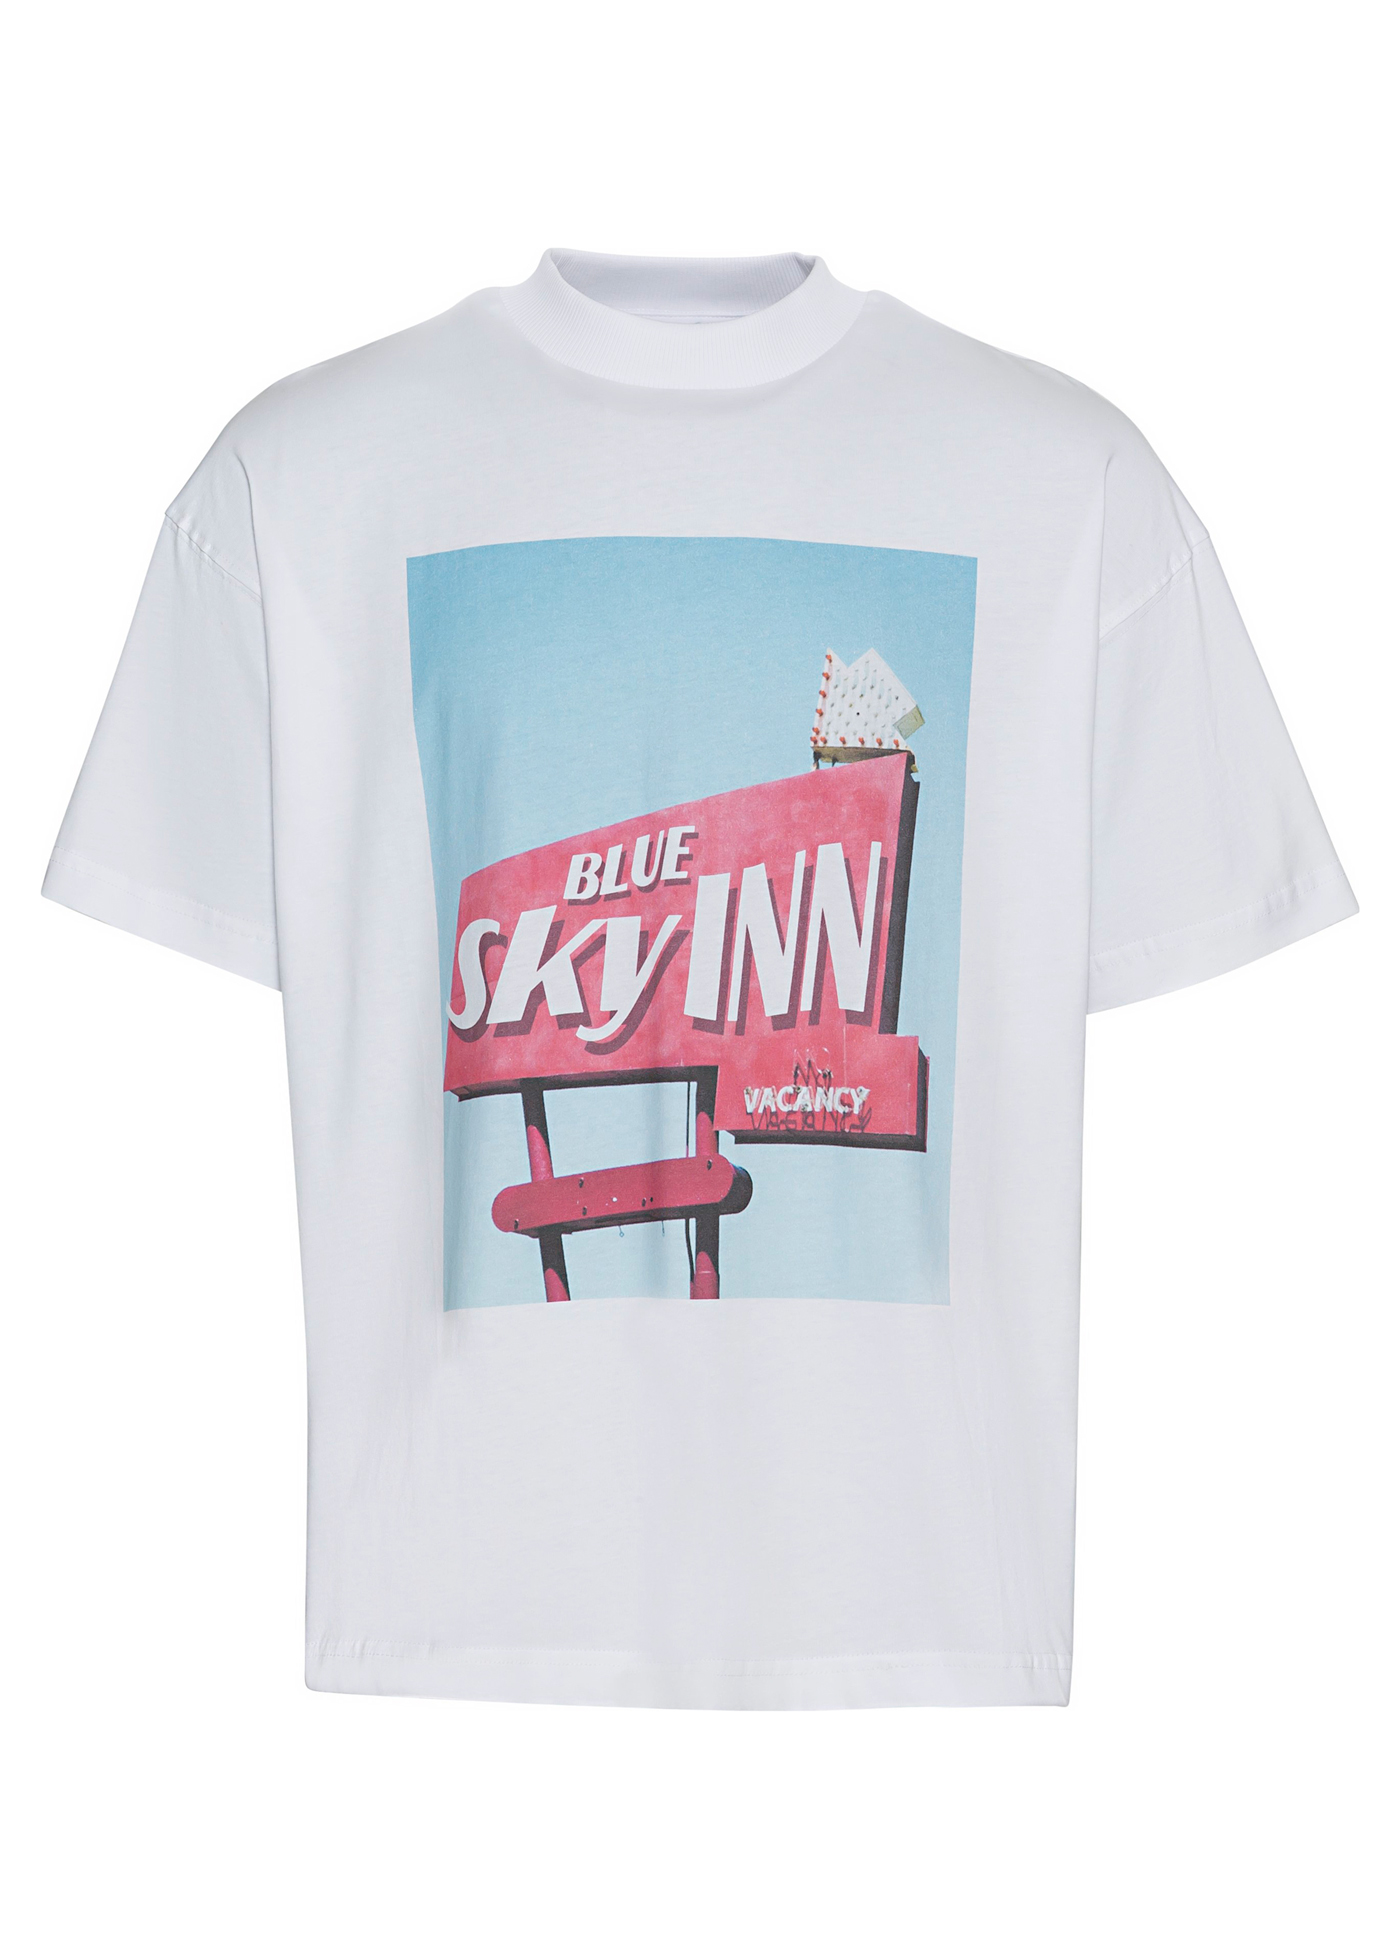 SIGN TEE image number 0